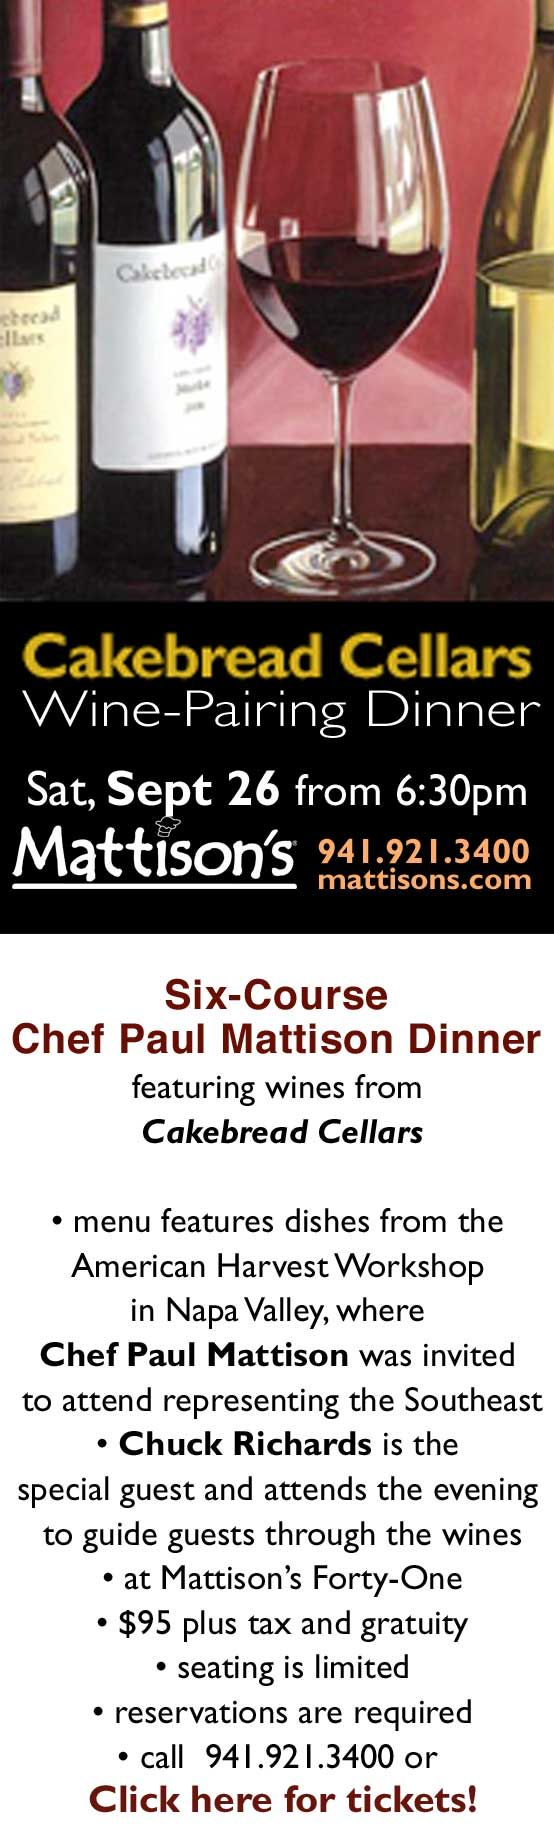 Exquisite Chef Paul Mattison six-course wine-pairing dinner featuring Cakebread Cellars at Mattison's Forty-One in Sarasota, Florida